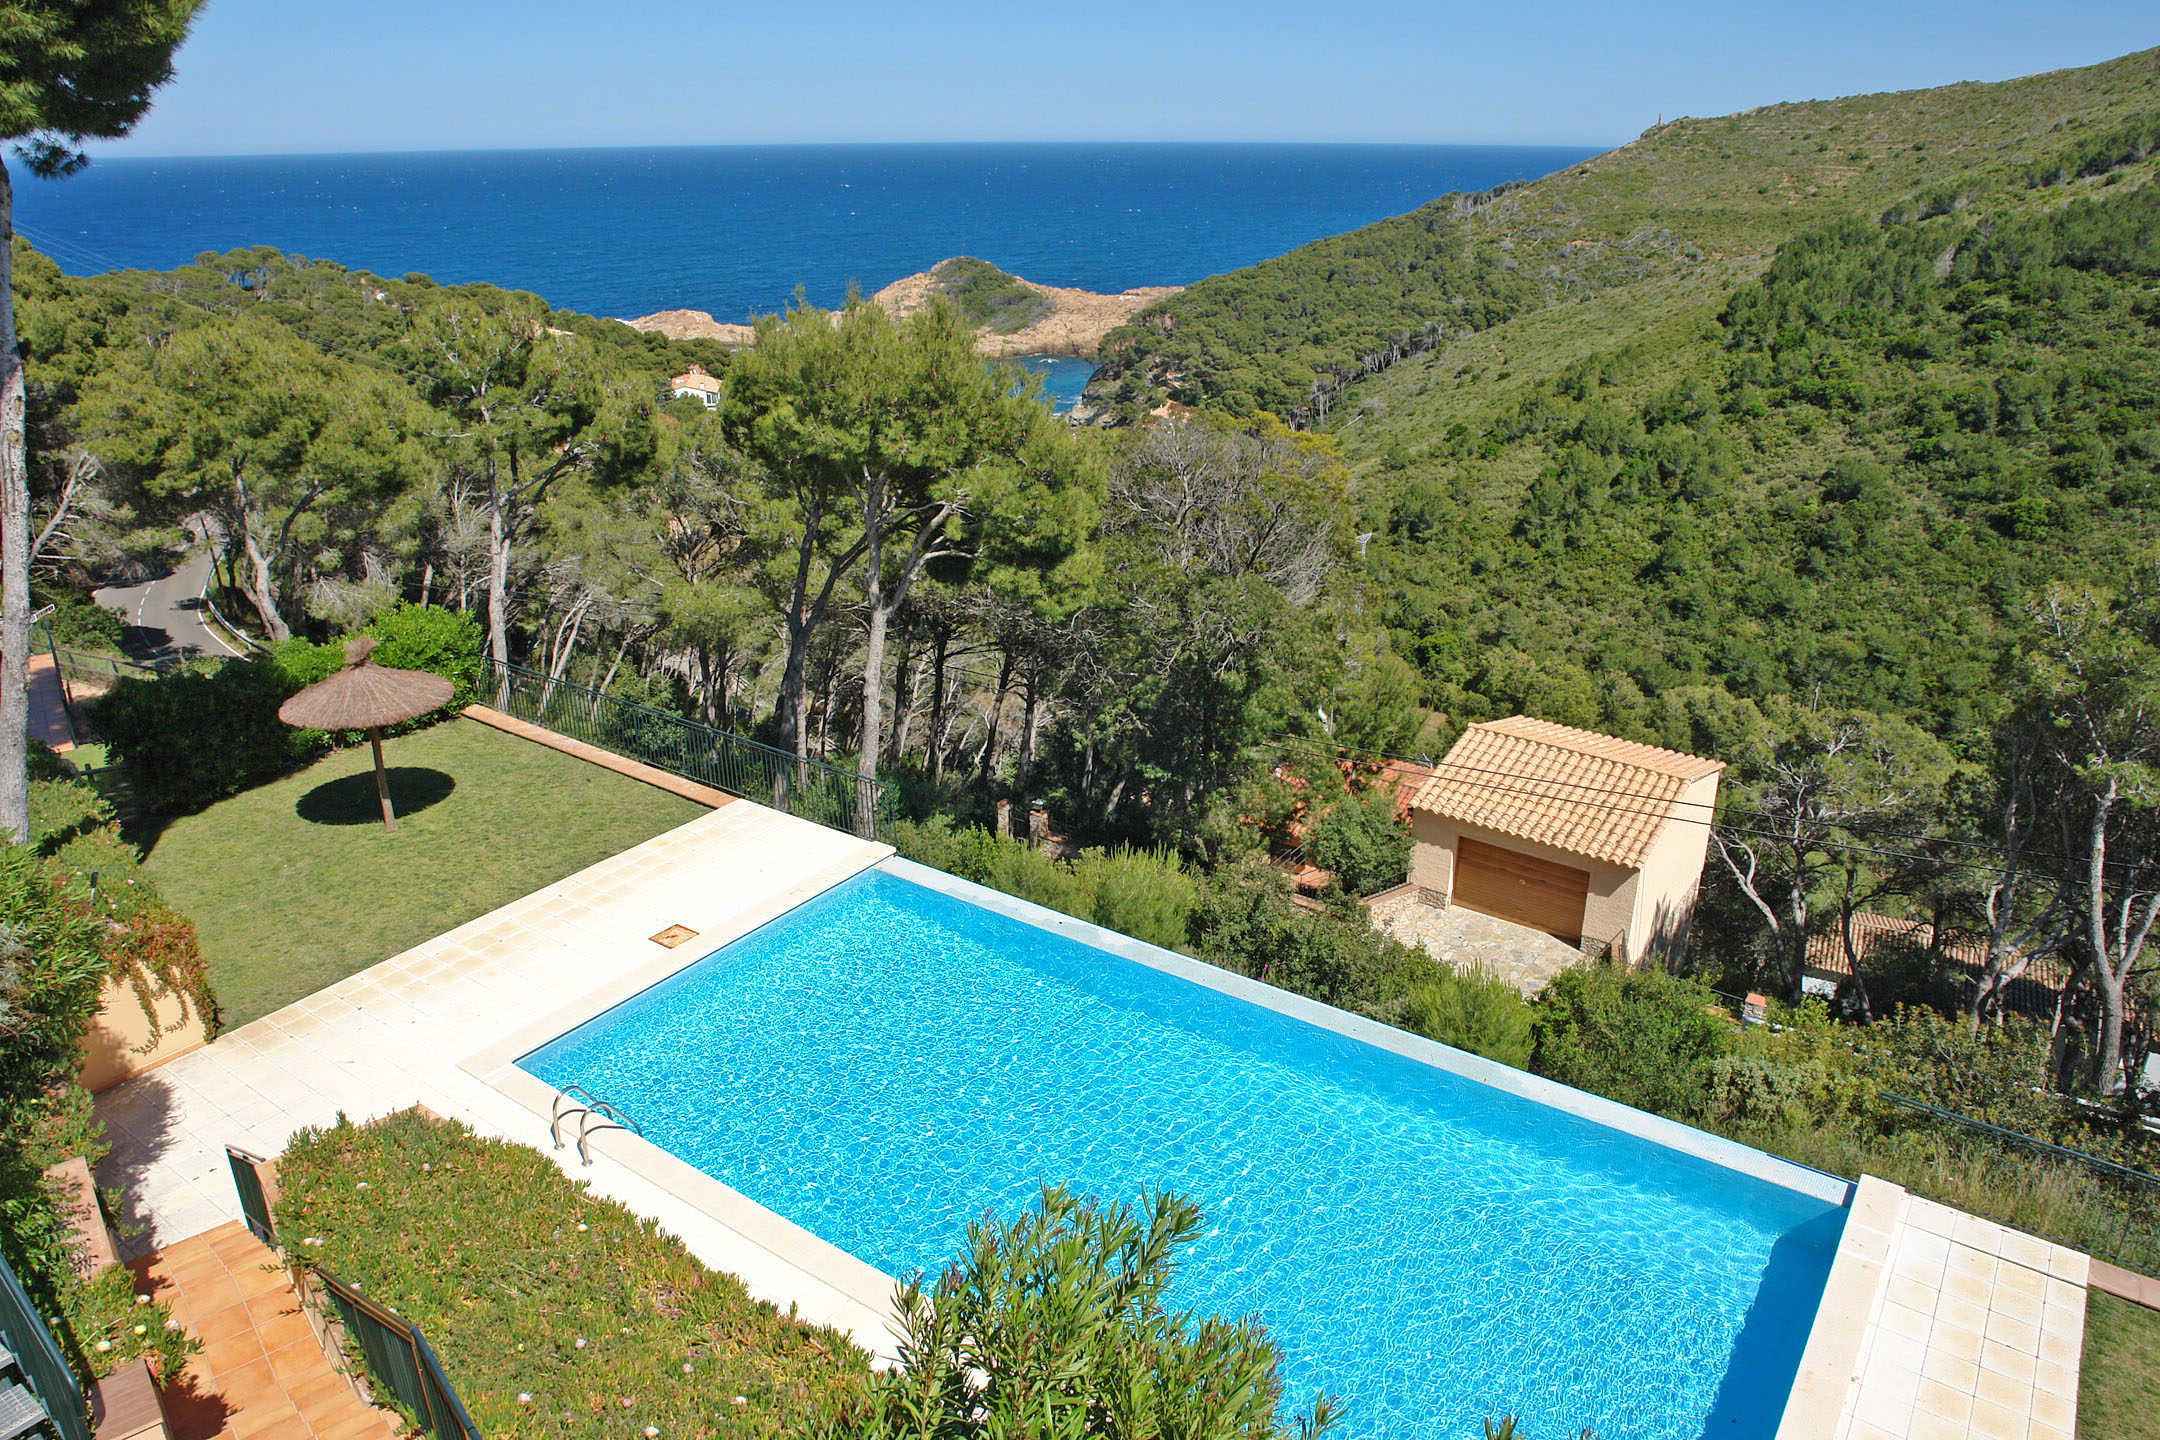 Single Family Home for Sale at Beautiful terraced houses for sale close to Sa Tuna, Begur Begur, Costa Brava 17255 Spain